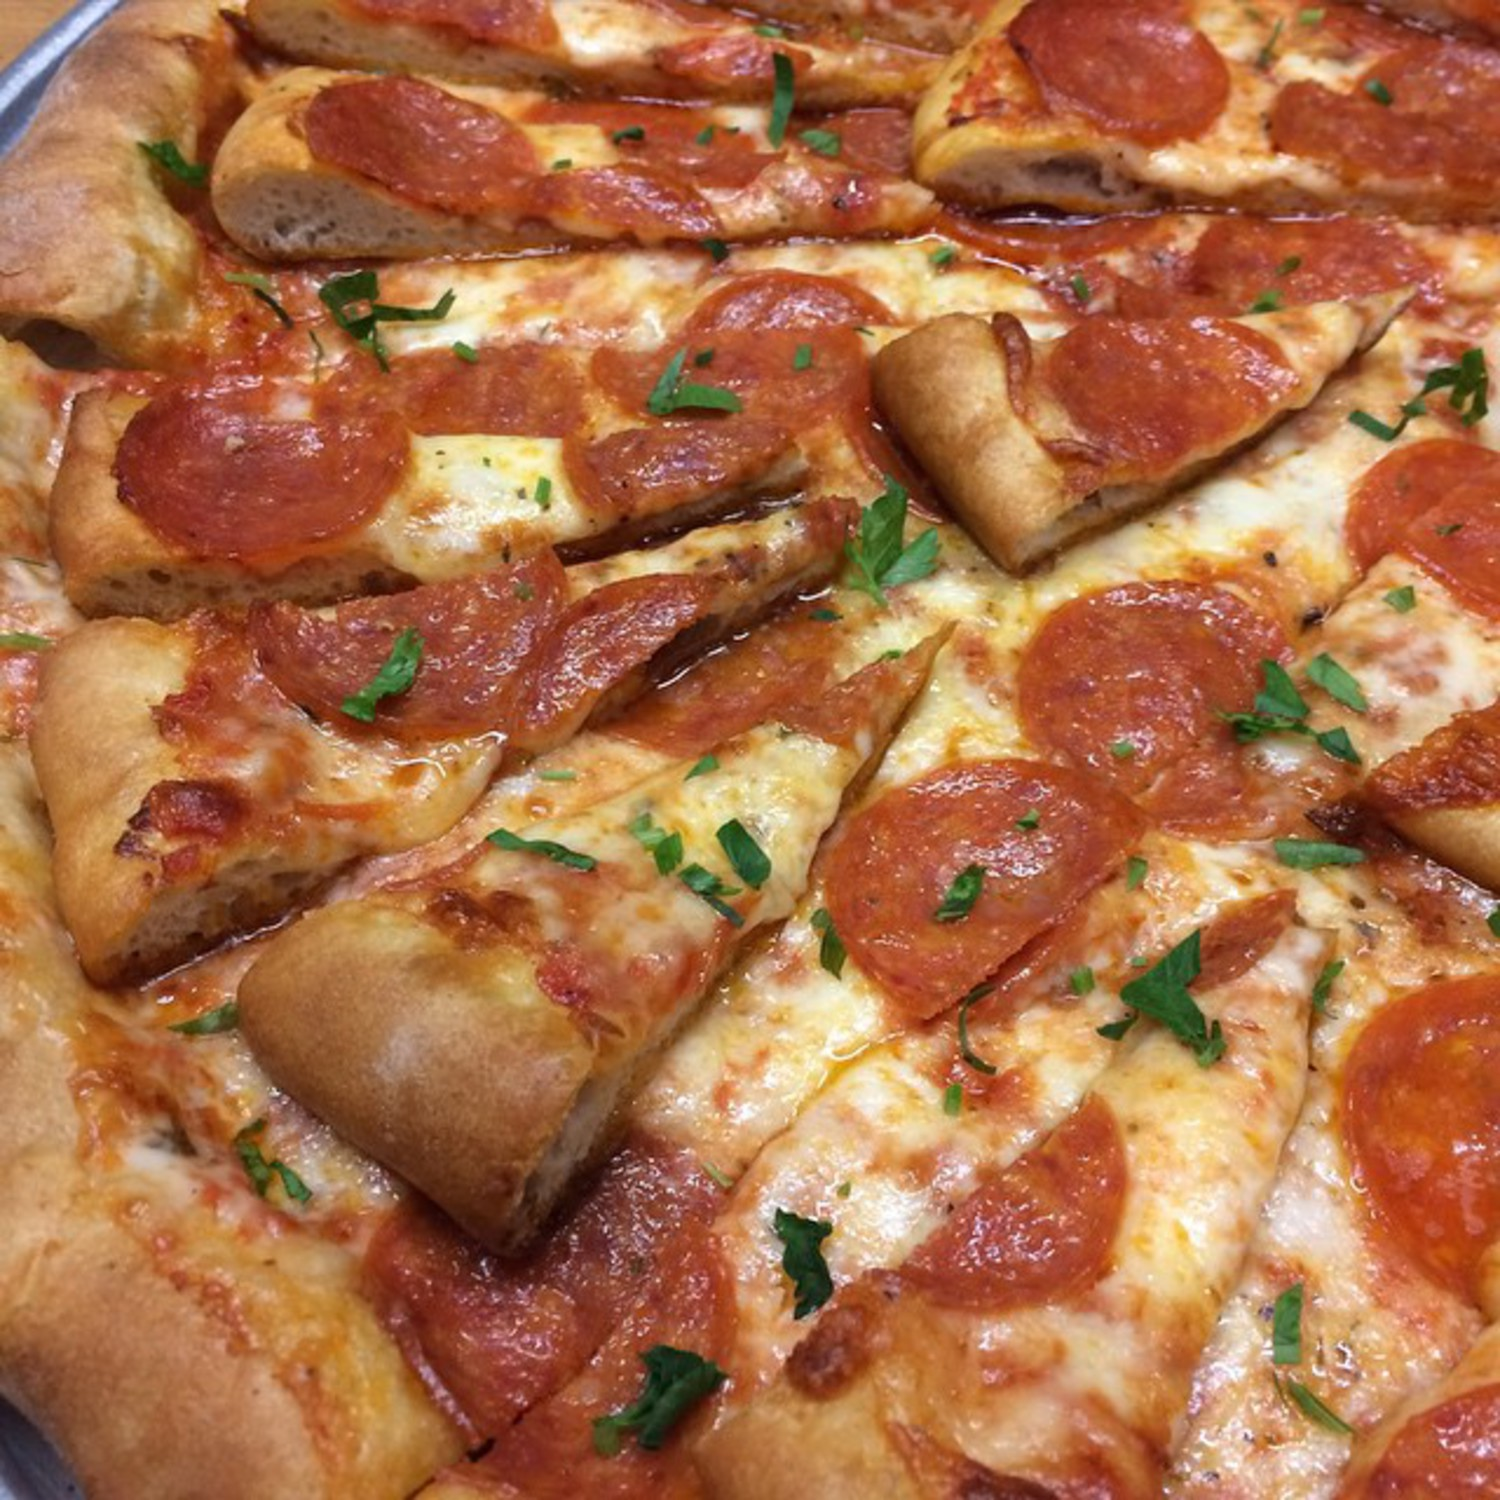 The InPEPtion, mini slices of pepperoni pizza topped on slices of pepperoni pizza, today at Vinnie's Williamsburg! #minivinnie #pizzaonpizza #vinniespizzeria